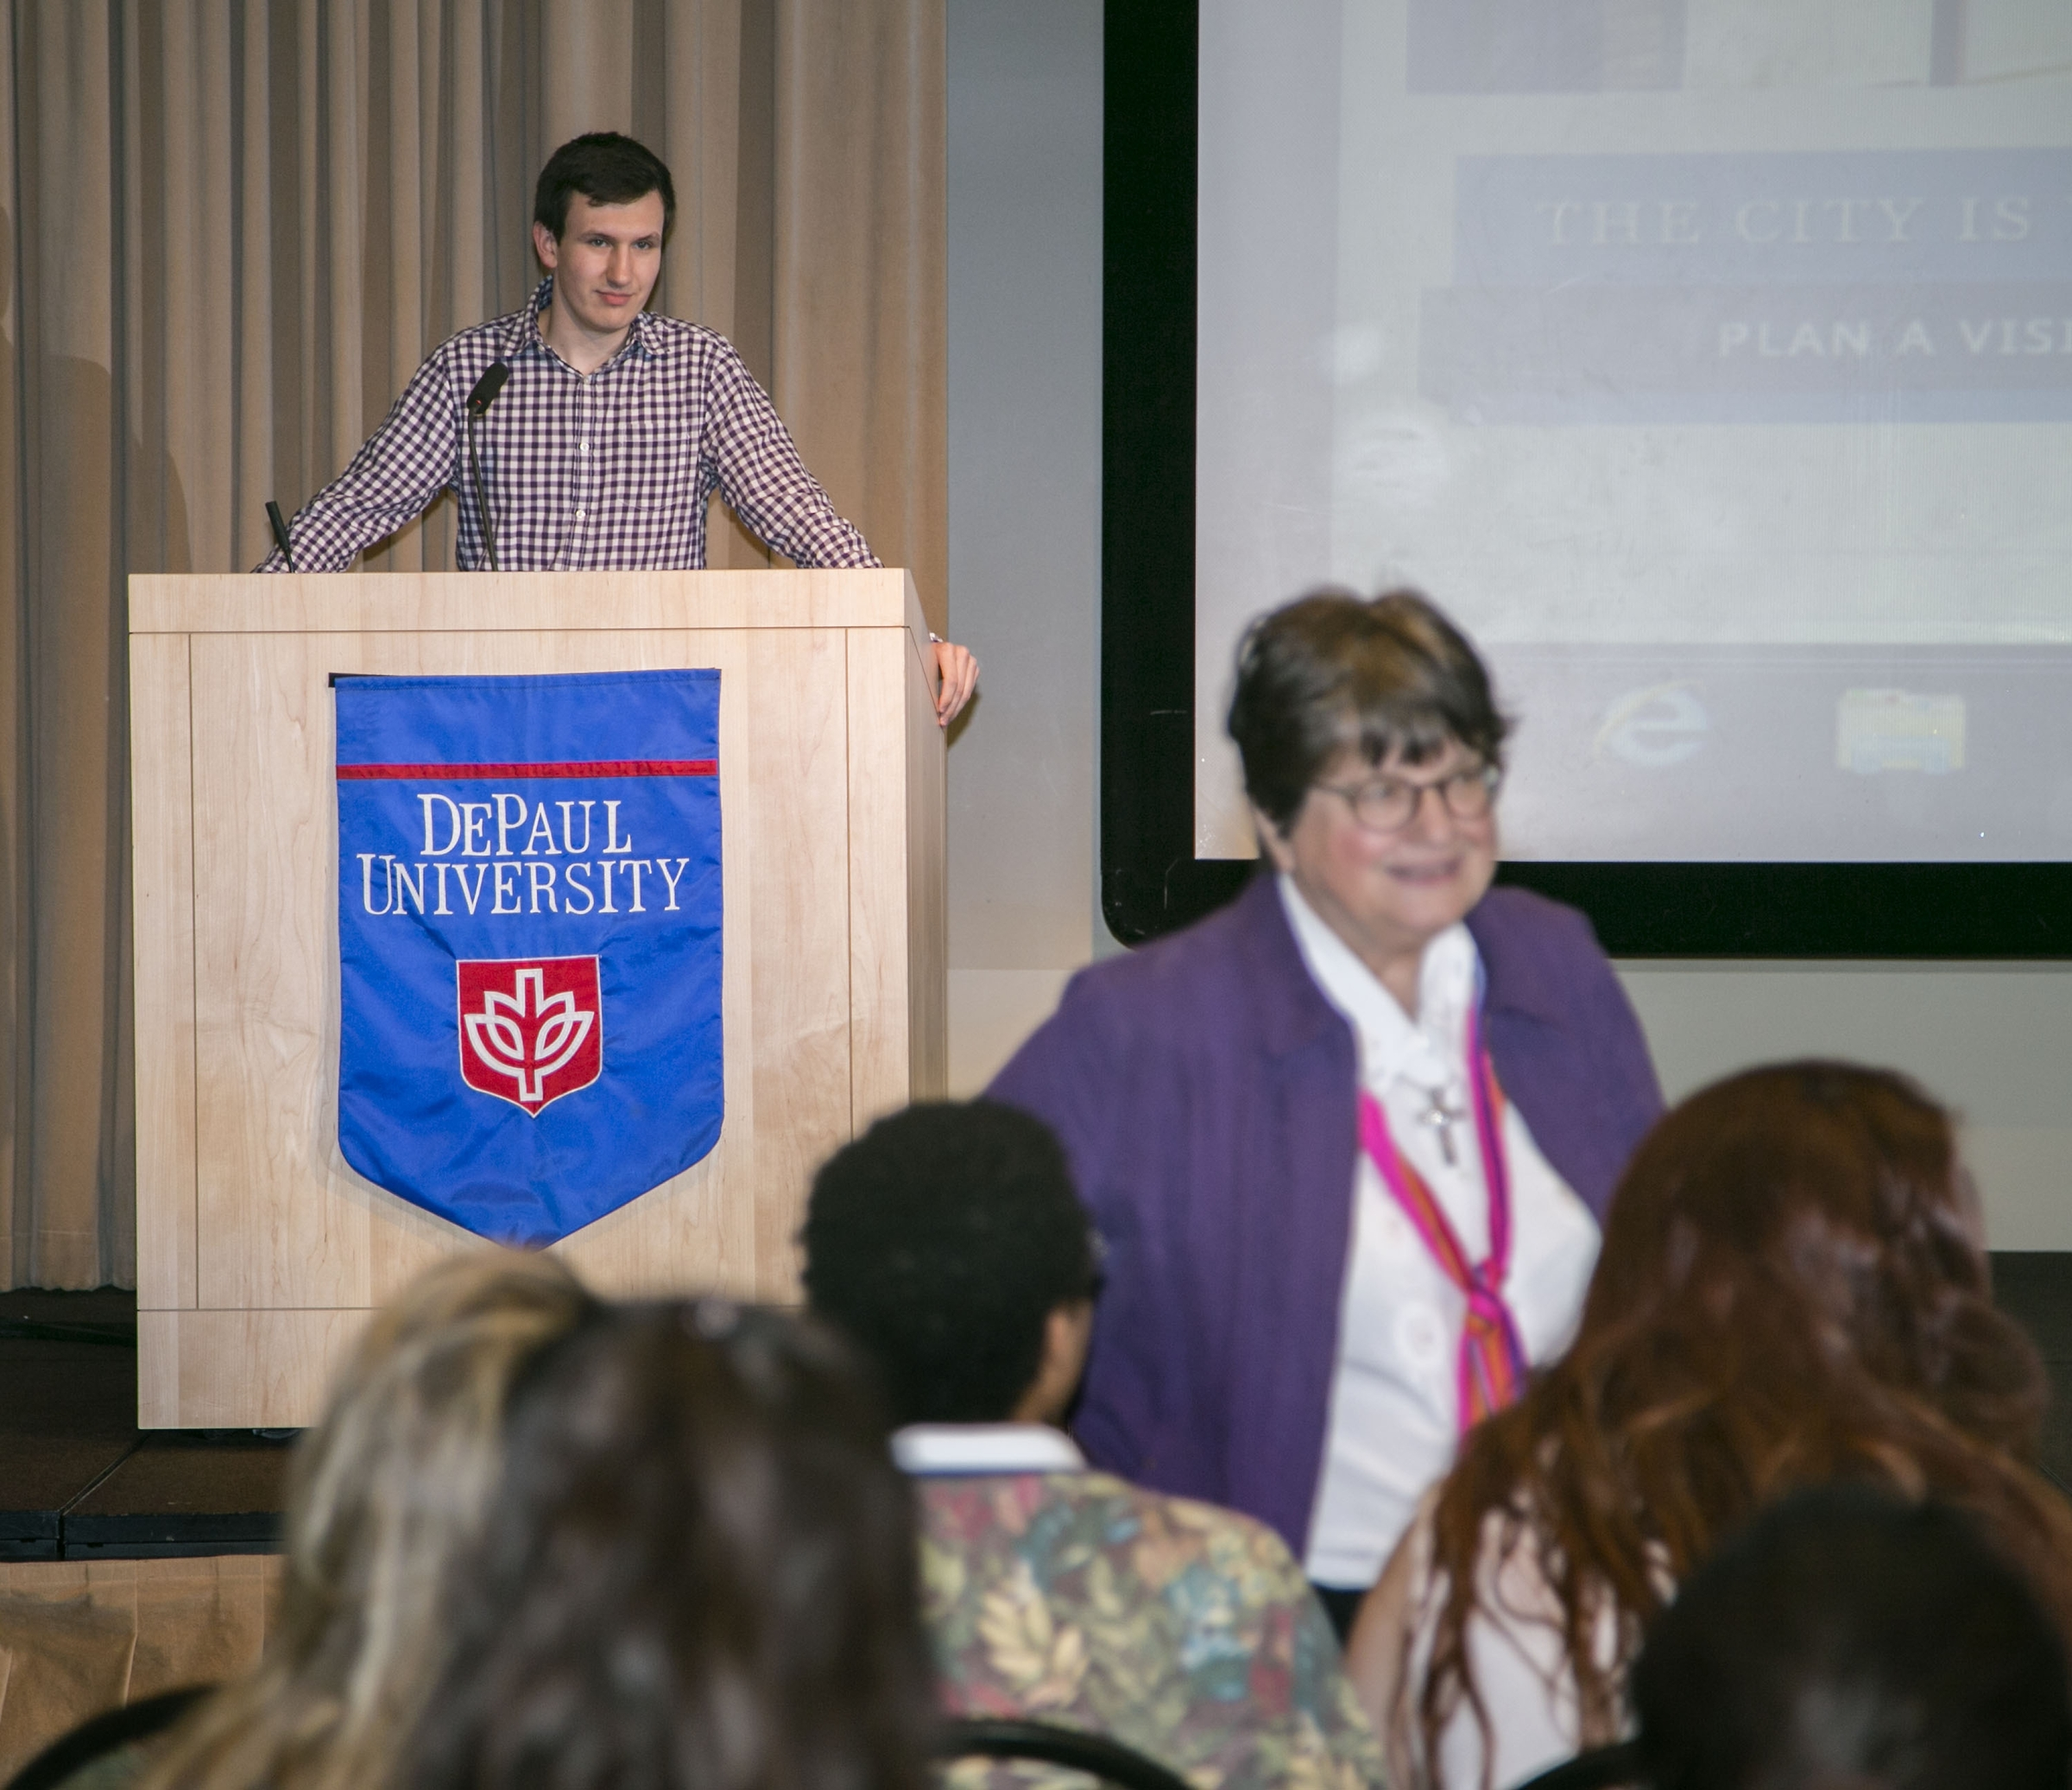 Griffin Hardy at Sister Helen Prejean event